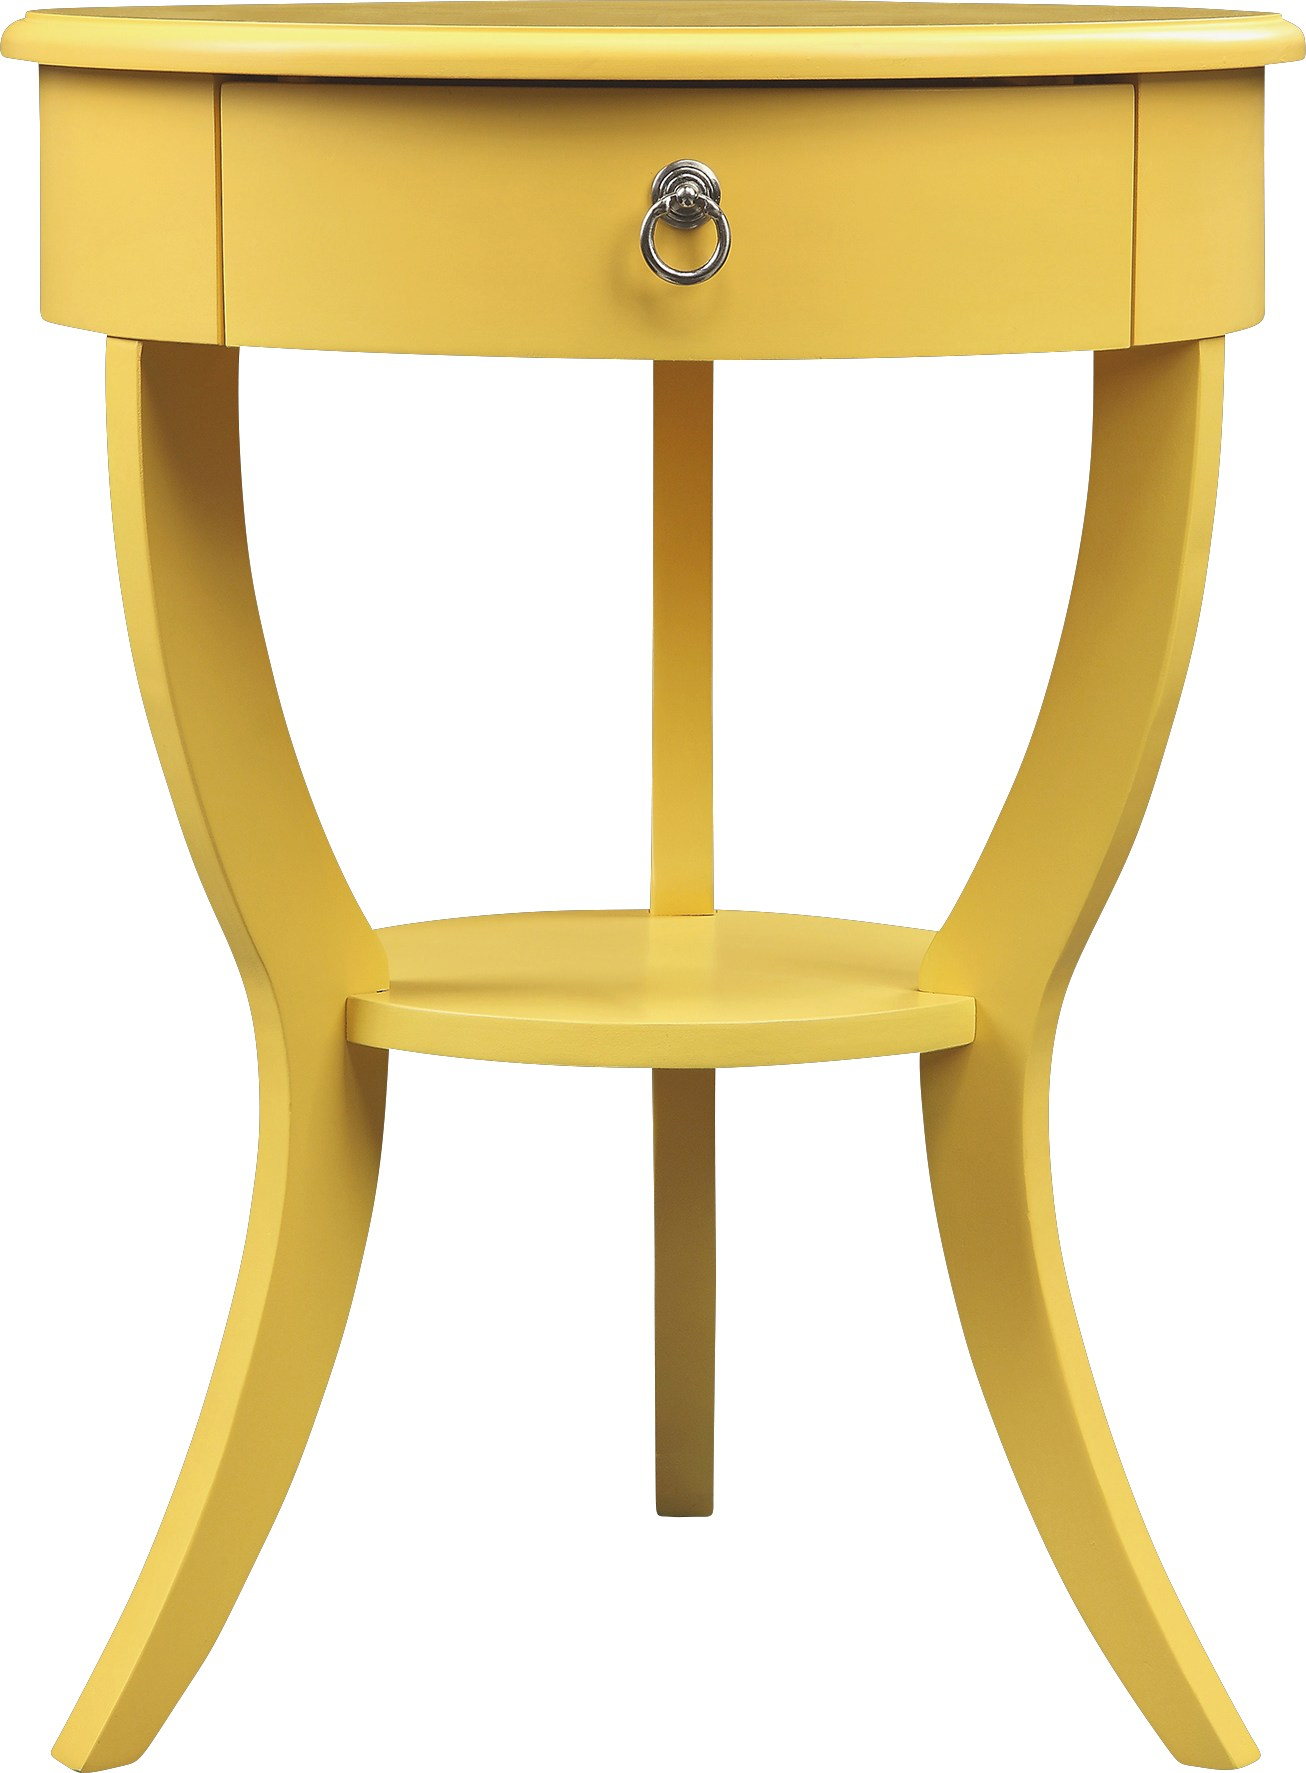 zellman yellow accent table tables colors dining room furniture edmonton patio for small patios black lamps bedroom circular glass side gas grills live edge wood square tablecloth